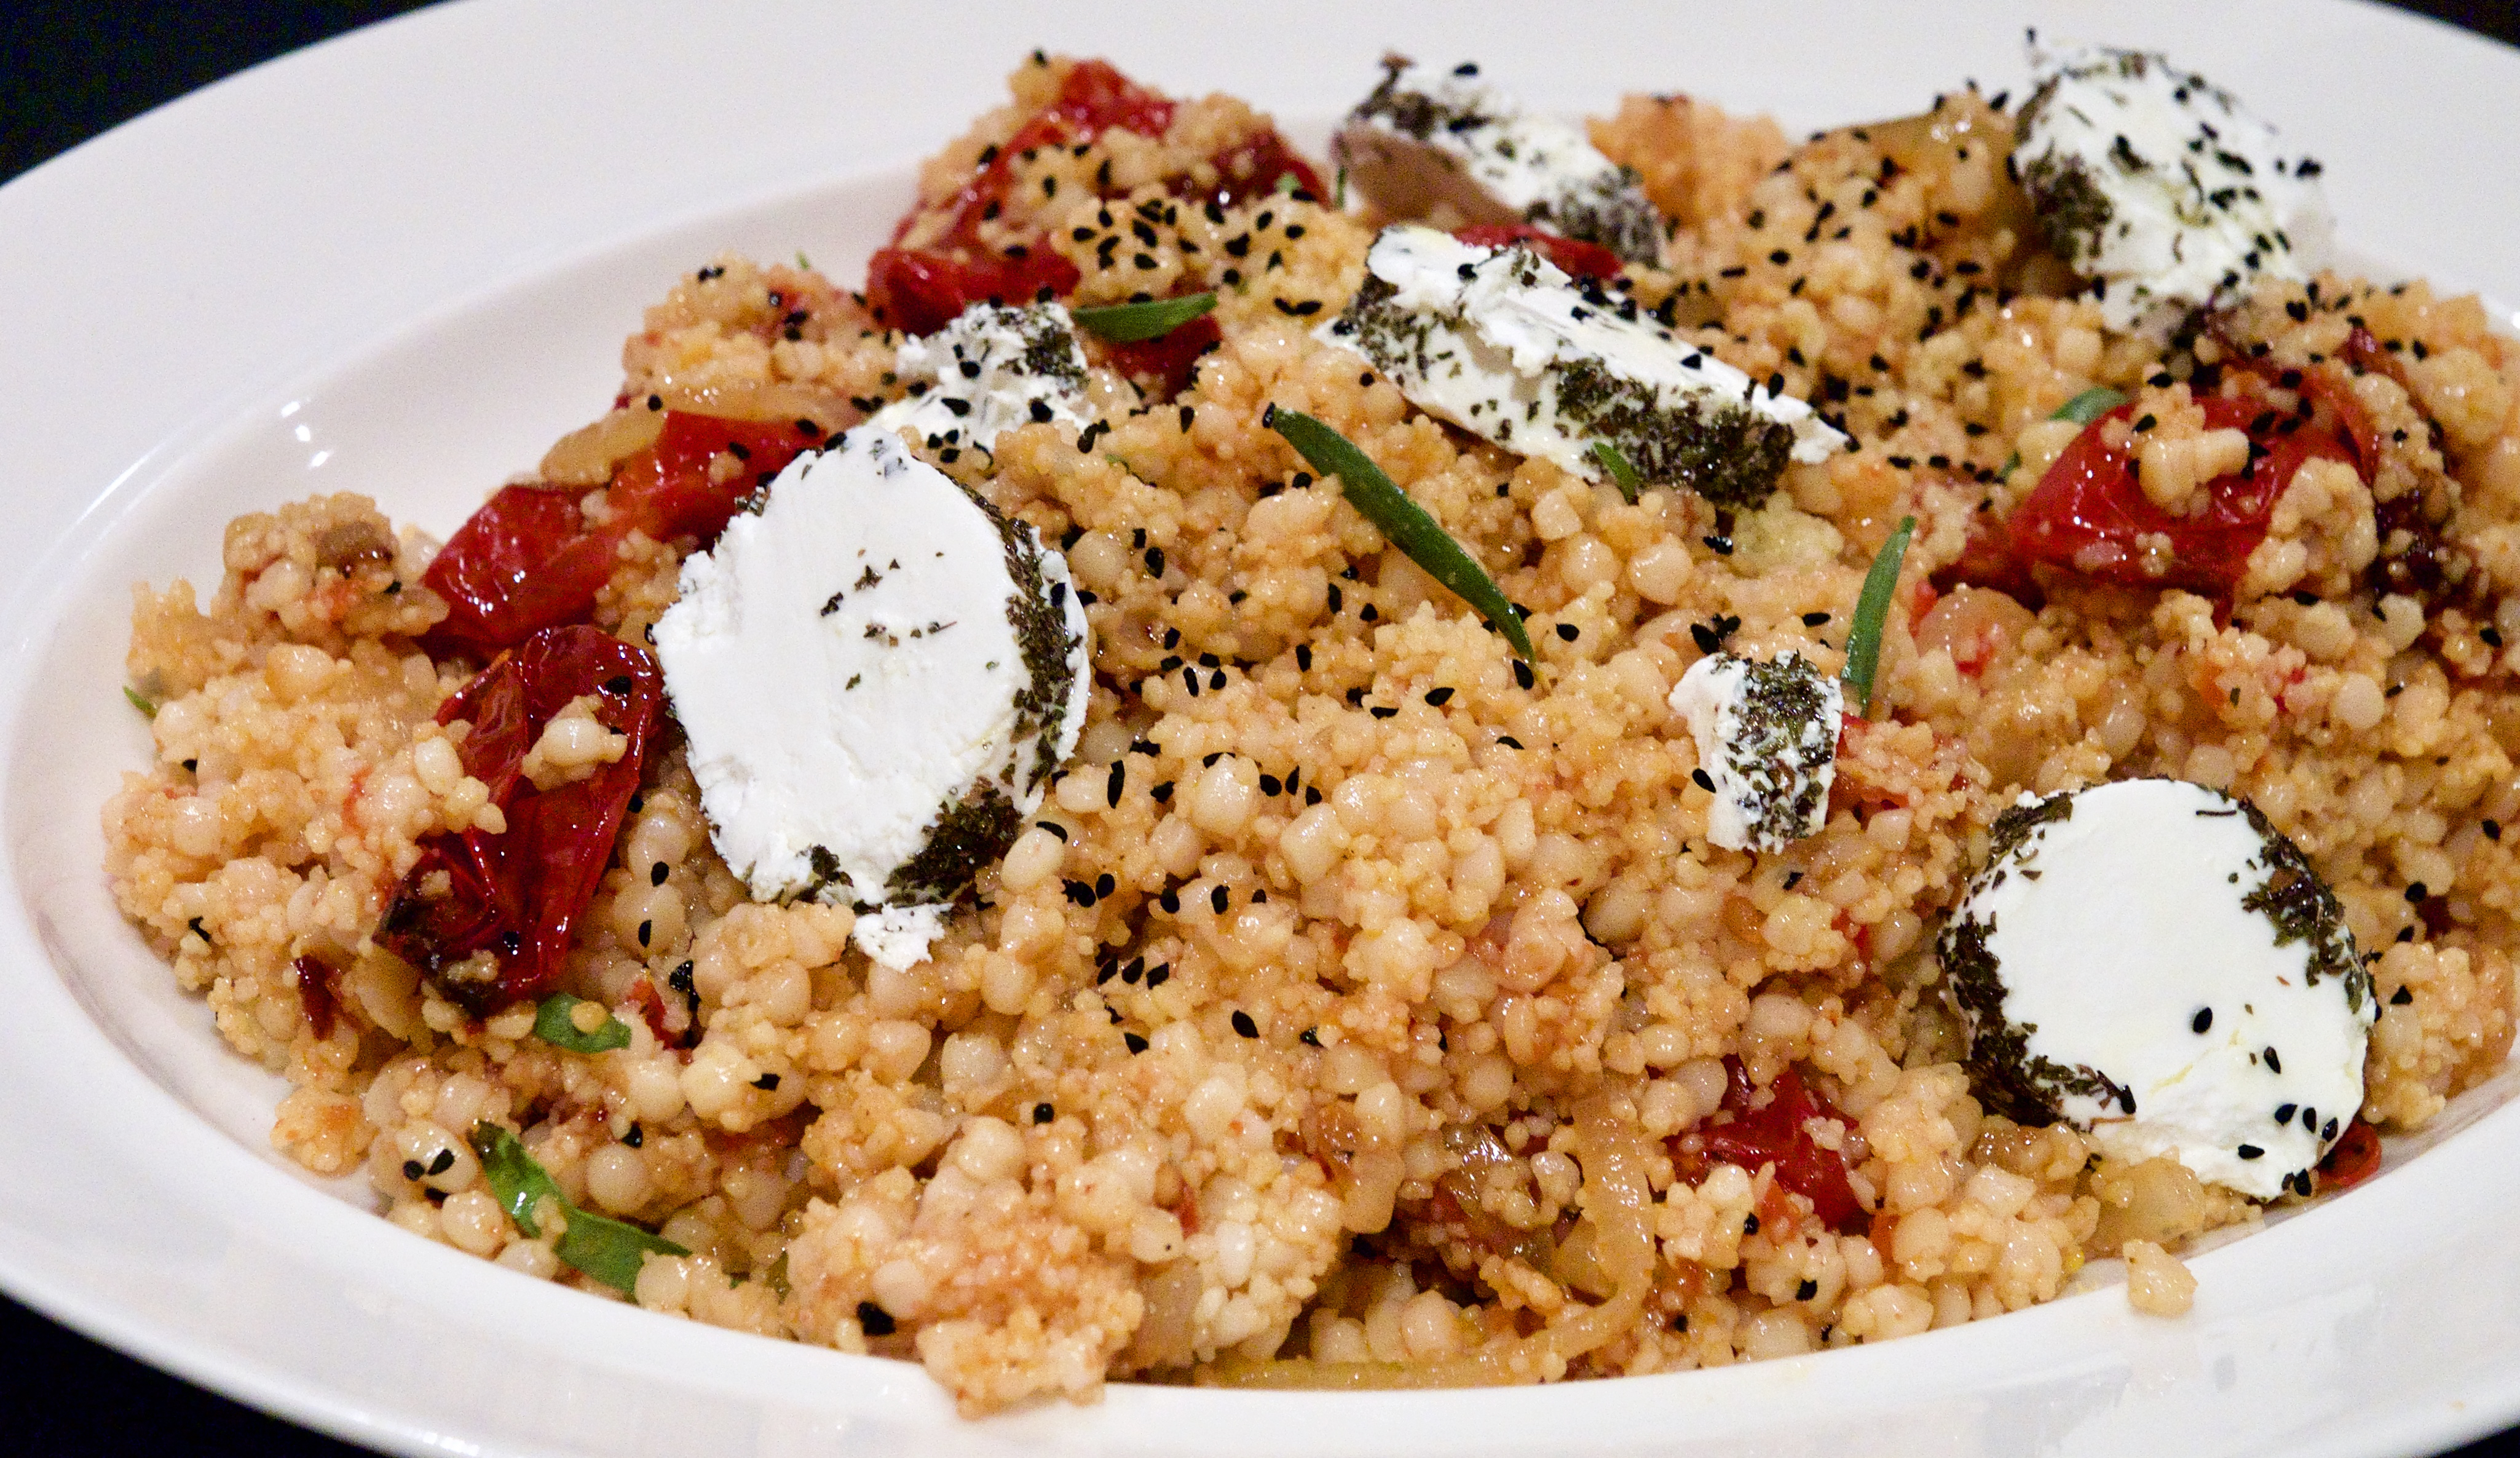 Couscous and mograbiah with oven-dried tomatoes